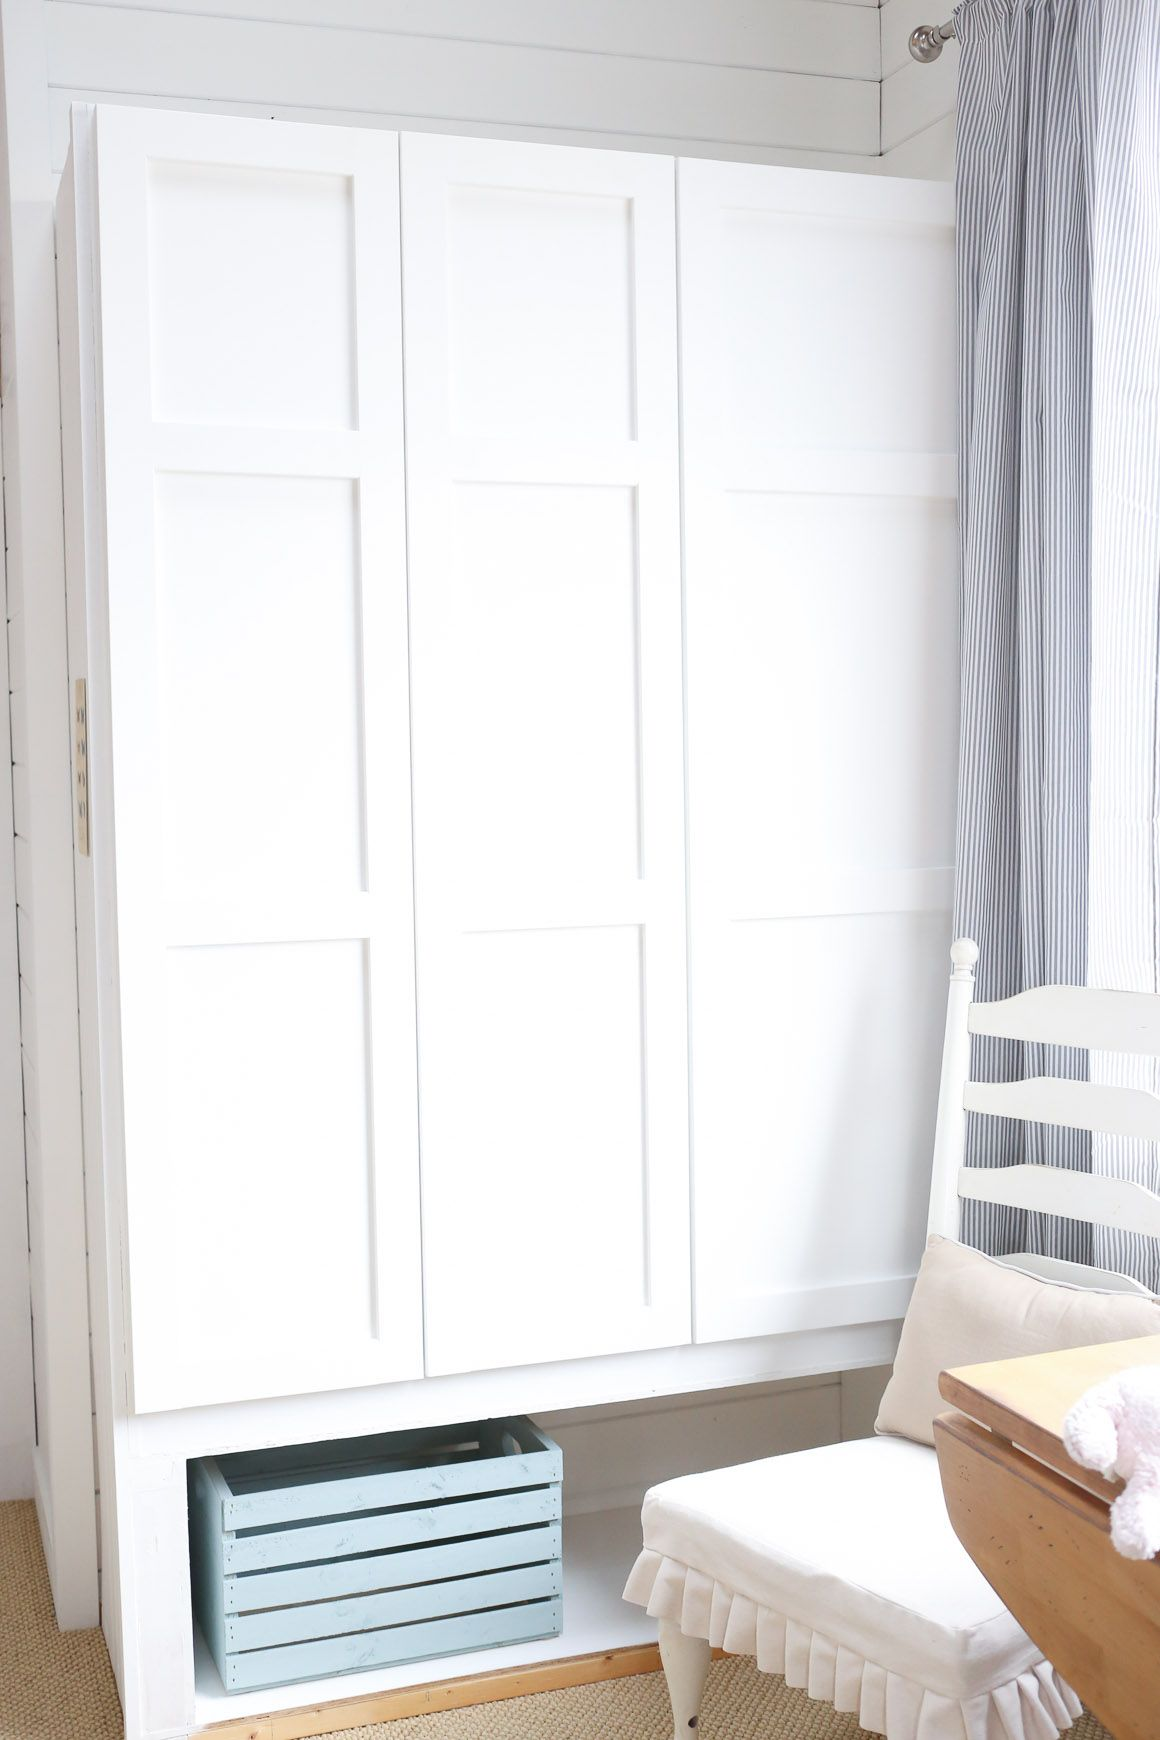 turn a basic ikea dombas wardrobe into custom built-ins| via this